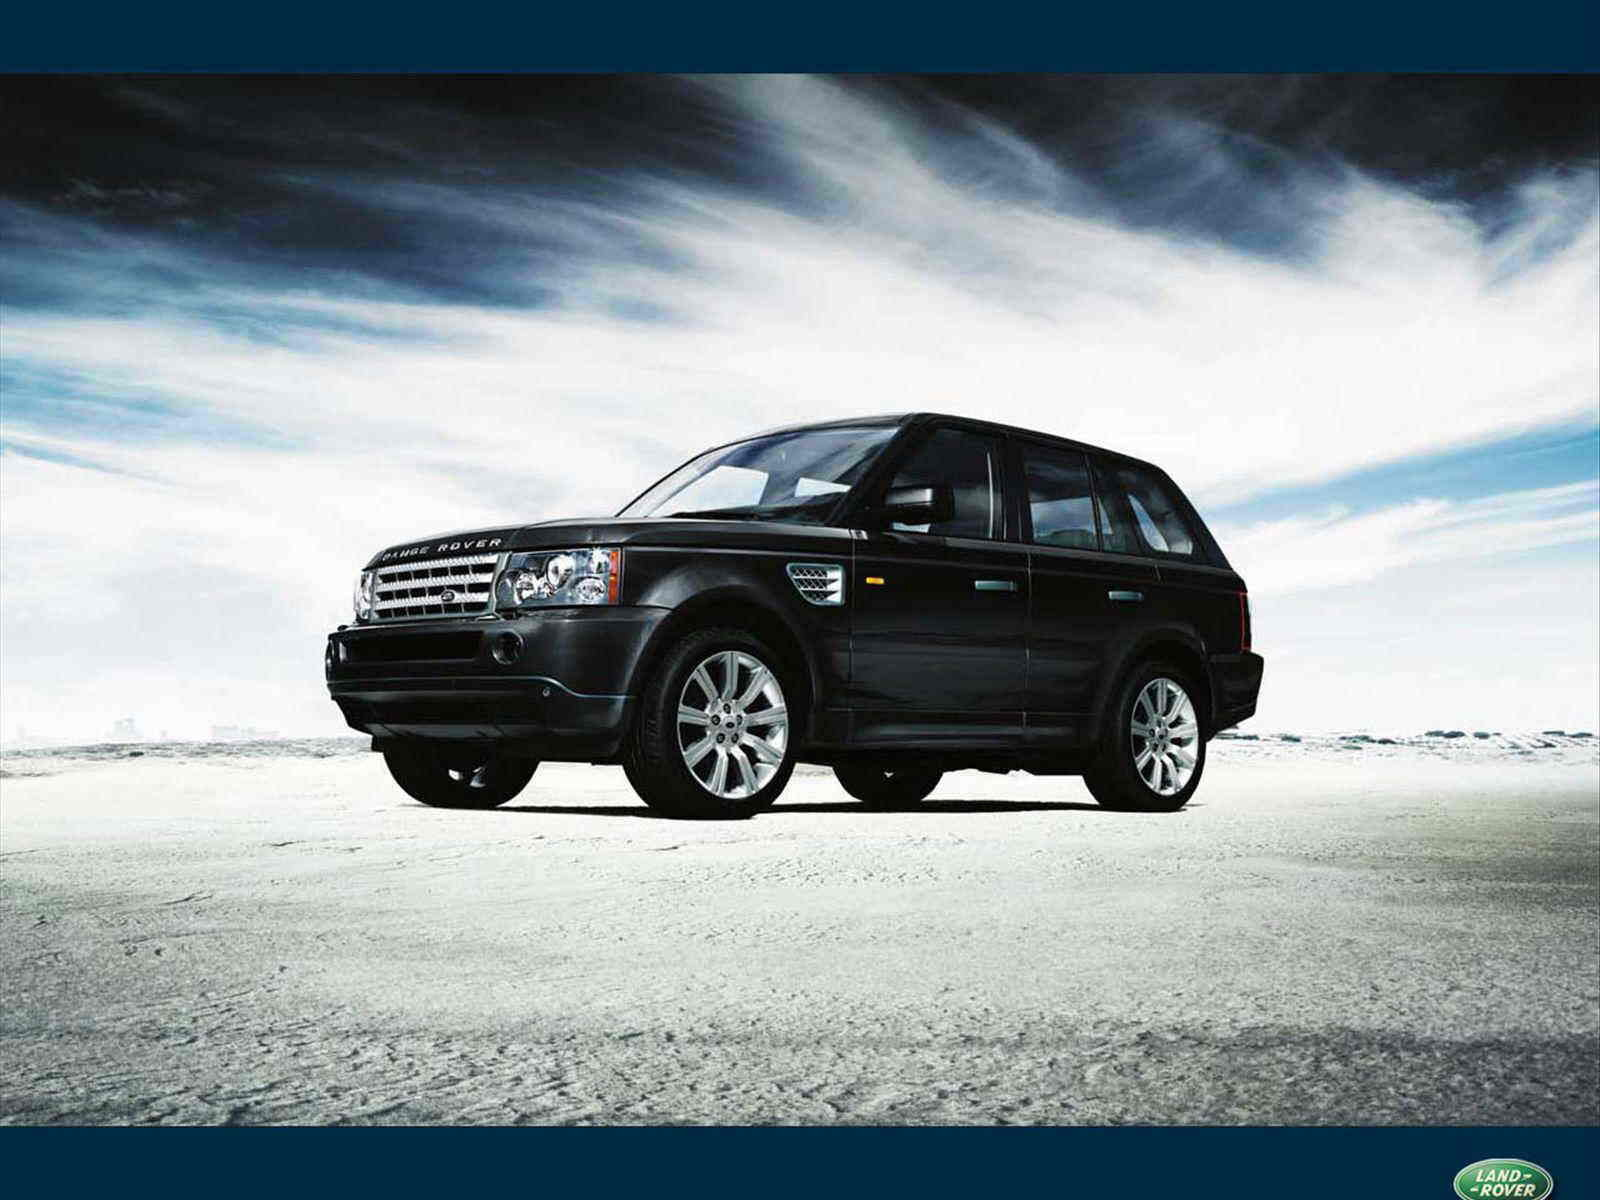 2006 range rover sport hst review gallery top speed. Black Bedroom Furniture Sets. Home Design Ideas